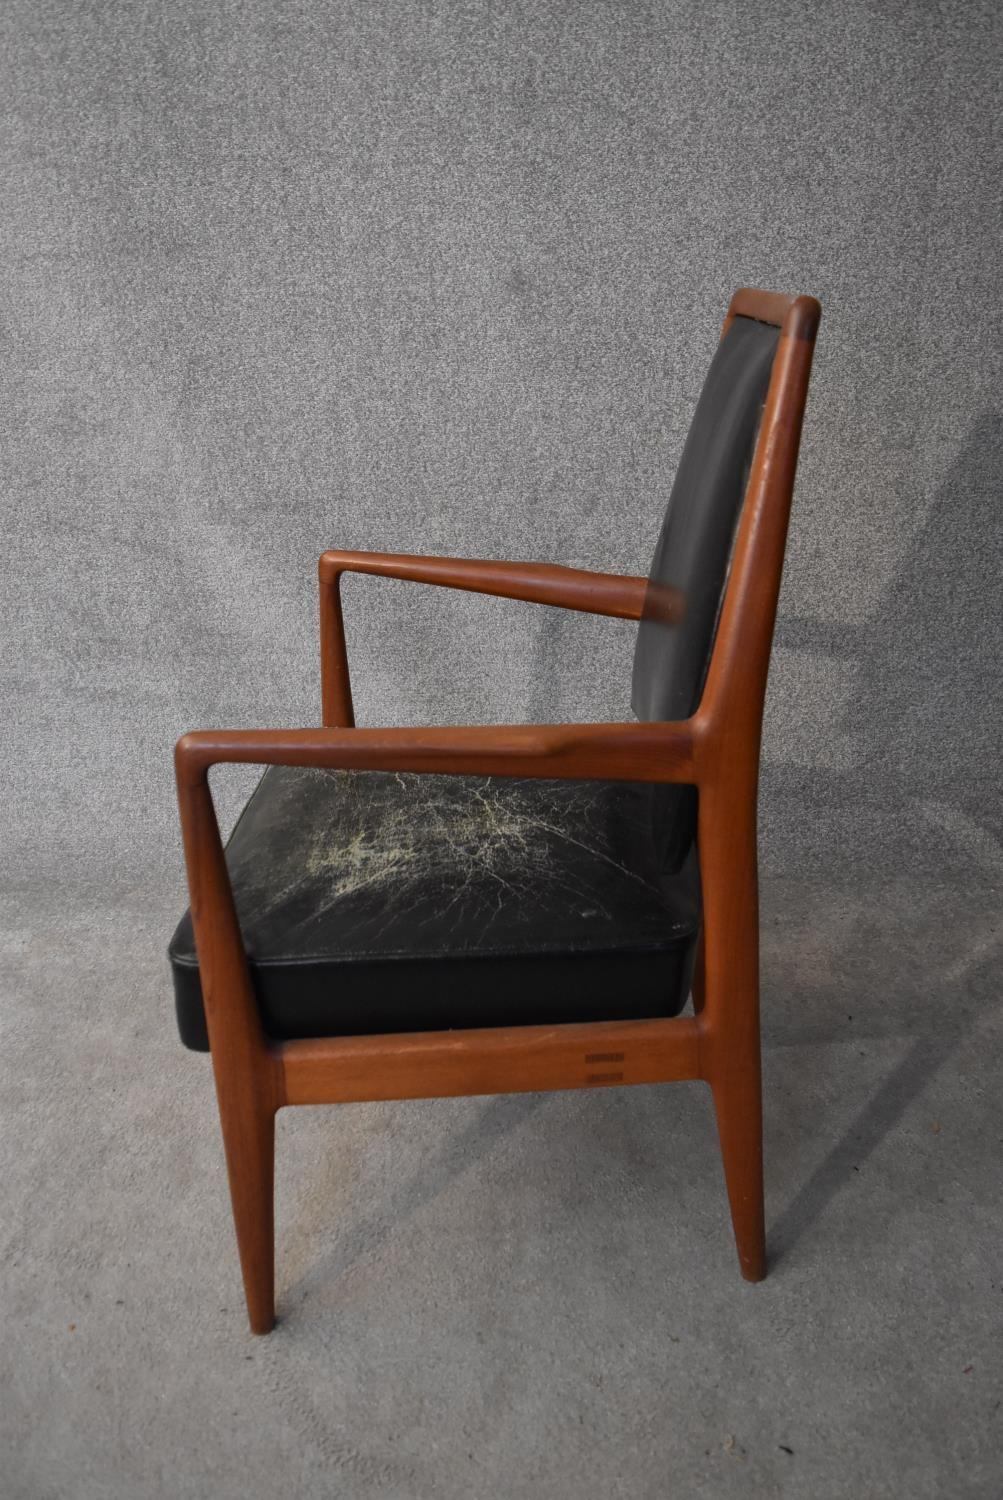 A mid 20th century vintage Danish teak framed armchair in leather upholstery. H.98x60cm - Image 4 of 4